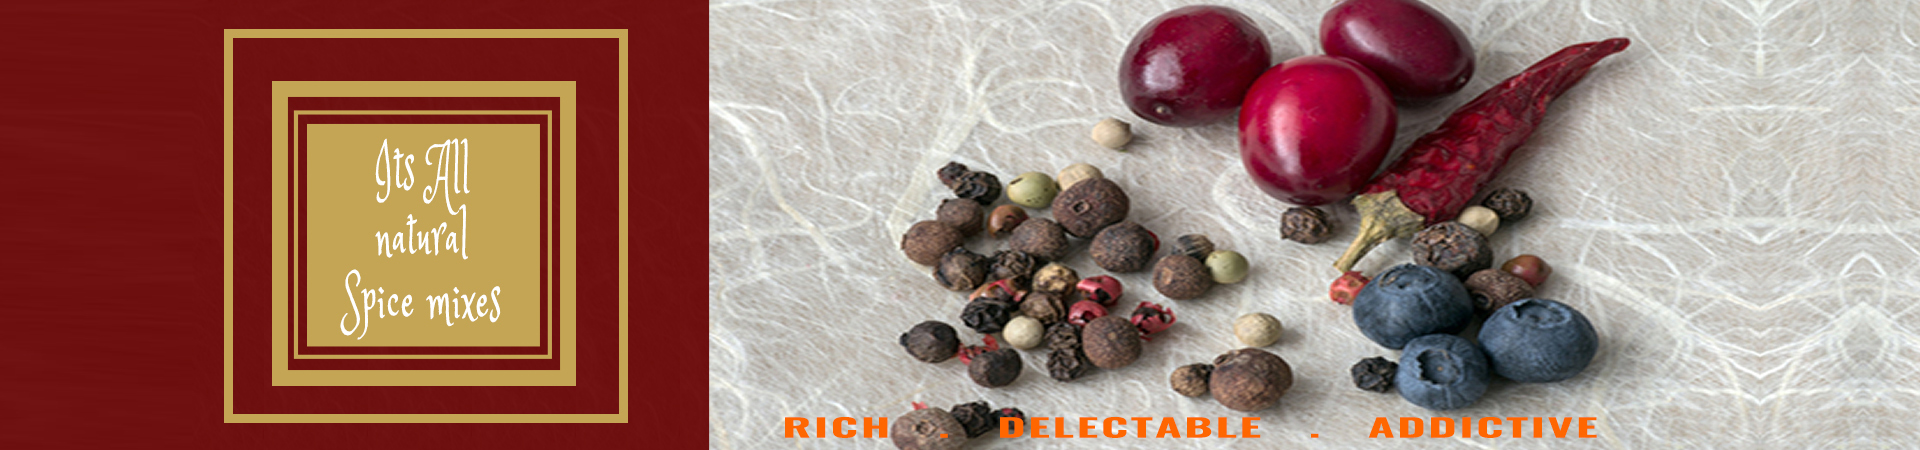 All Natural Spice Mixes